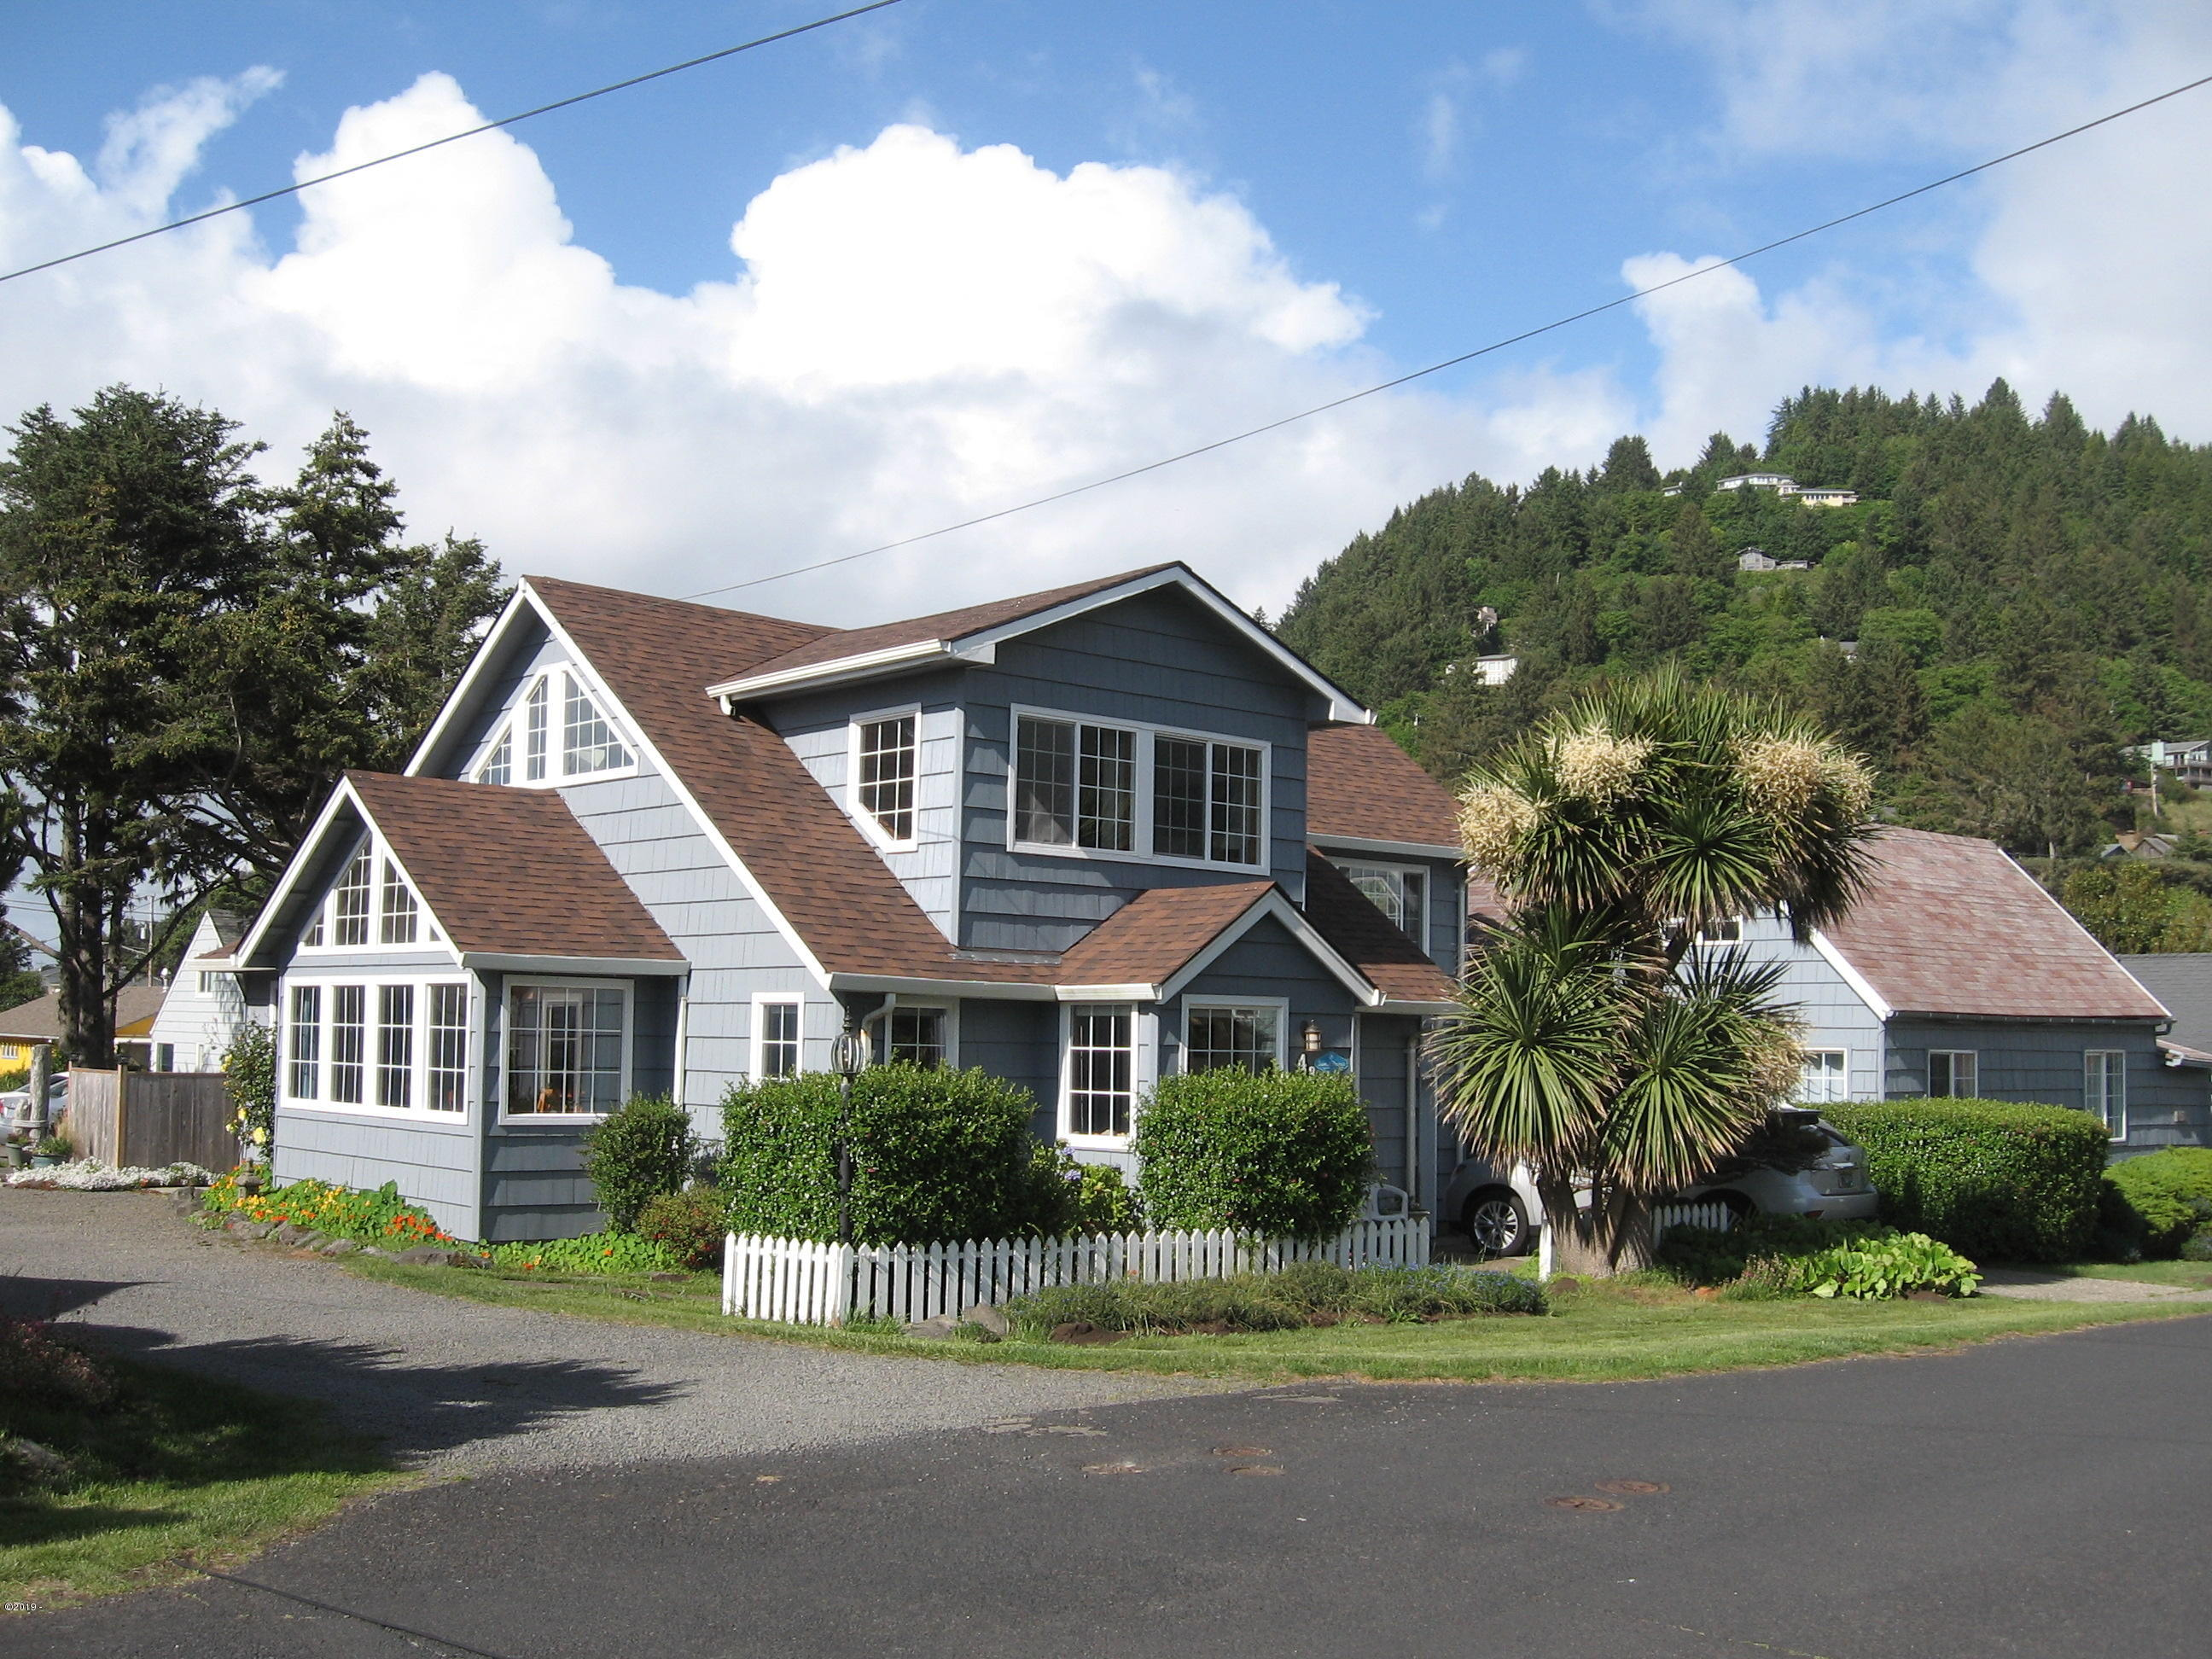 431 W 2nd St, Yachats, OR 97498